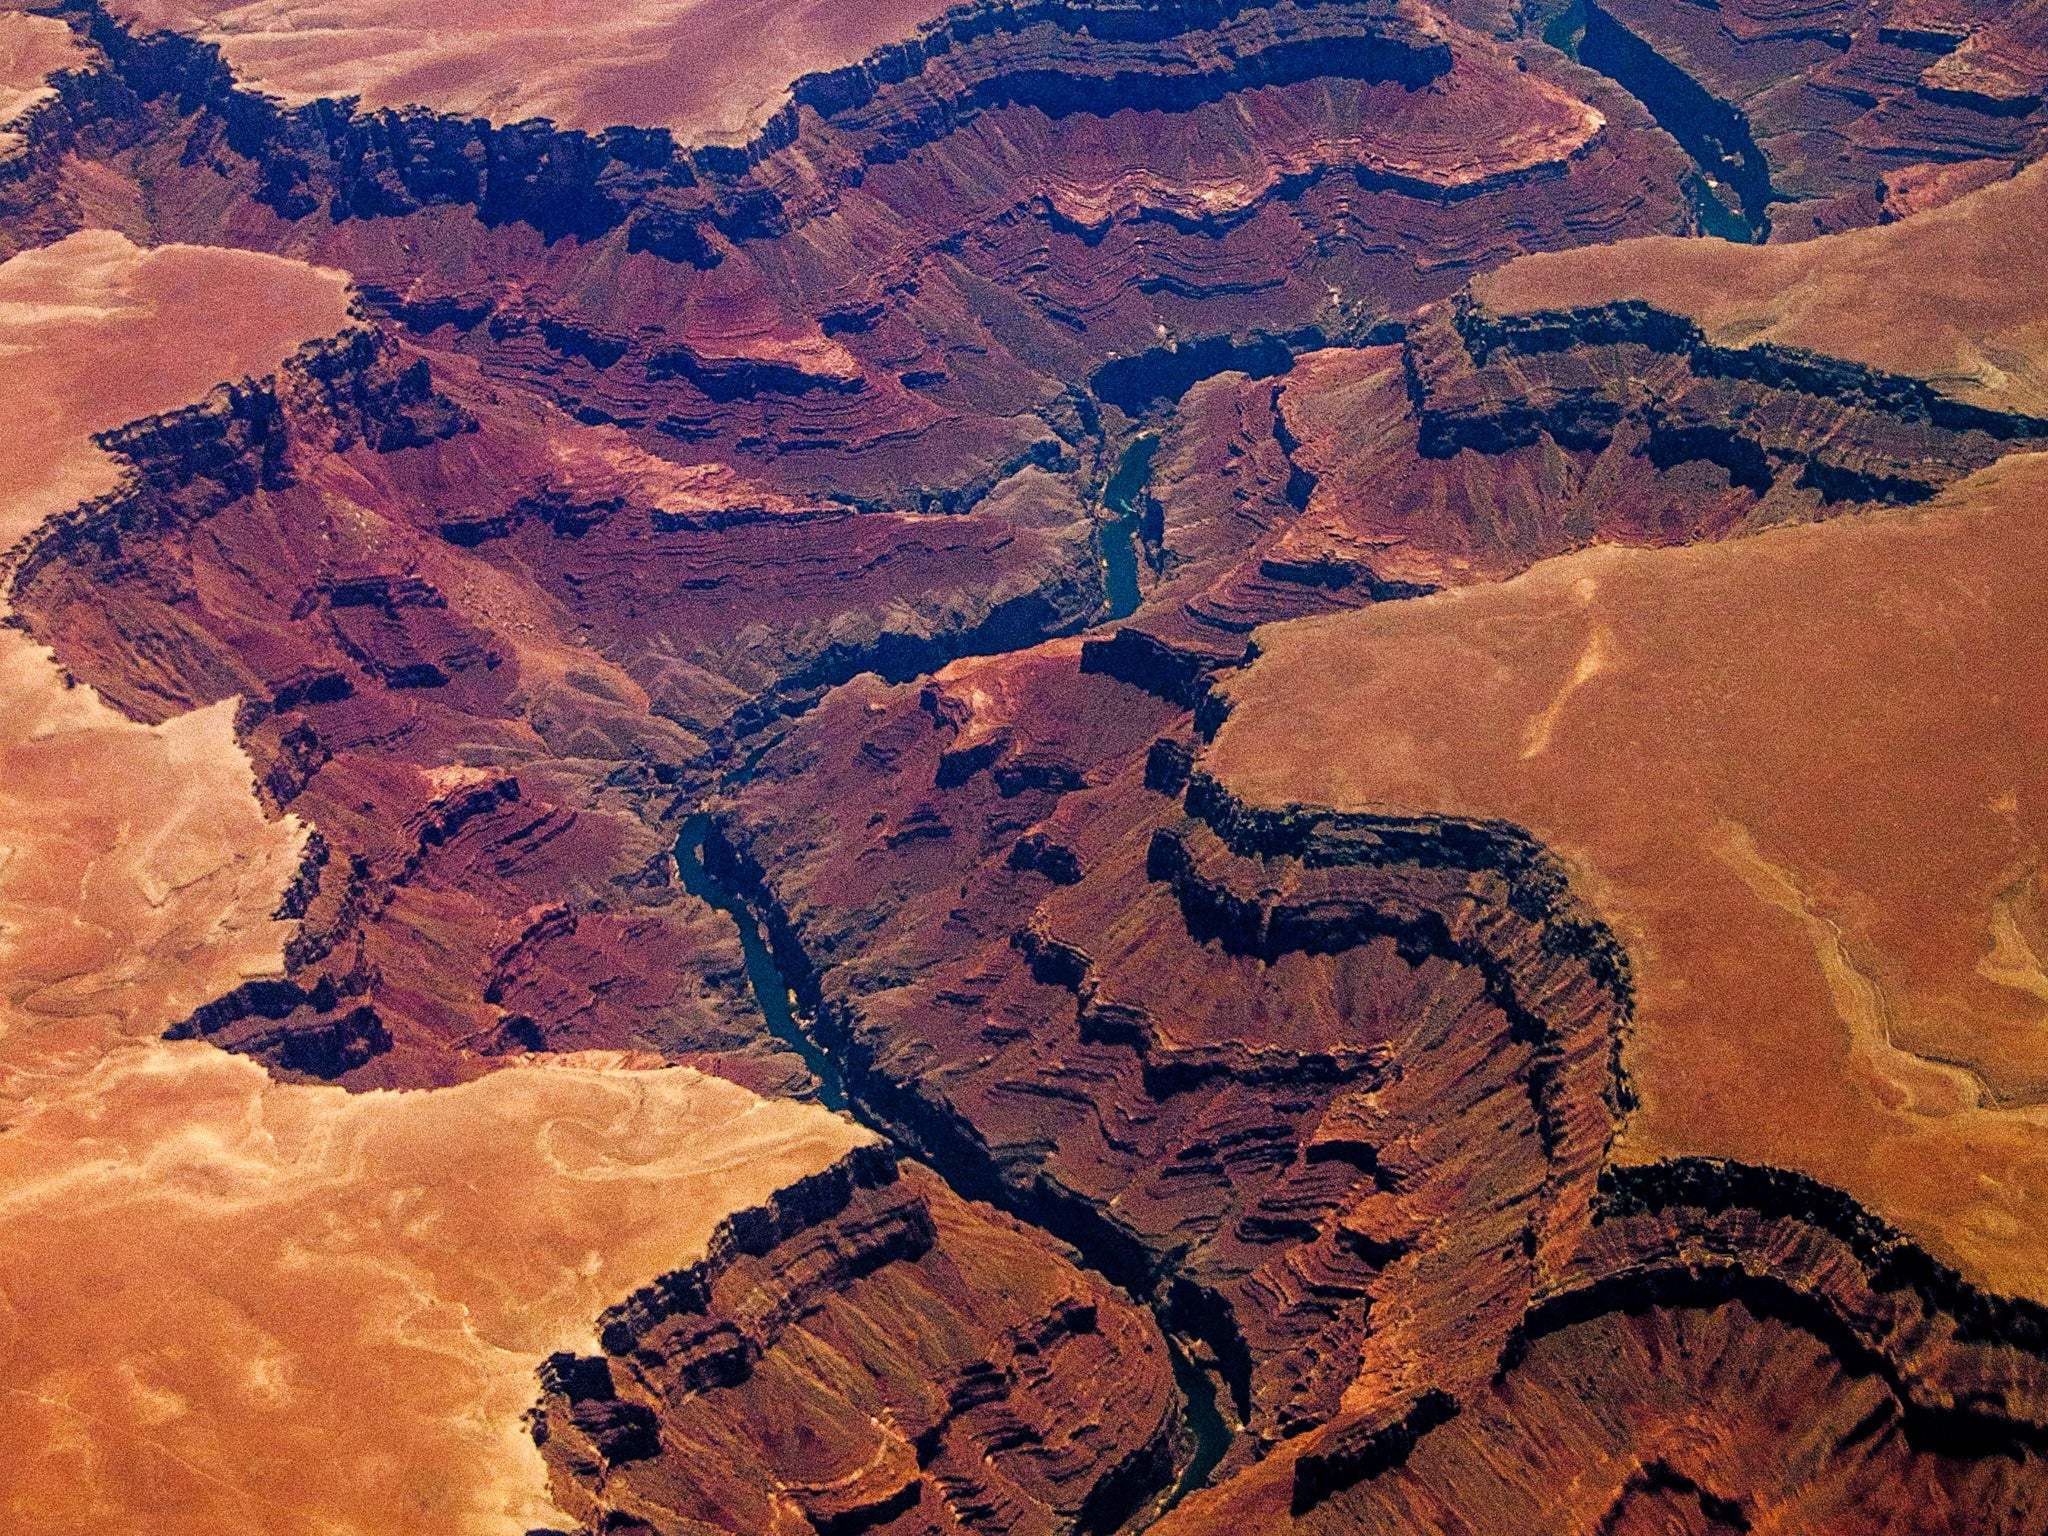 http://static.independent.co.uk/s3fs-public/thumbnails/image/2014/01/27/11/grand-canyon-getty.jpg